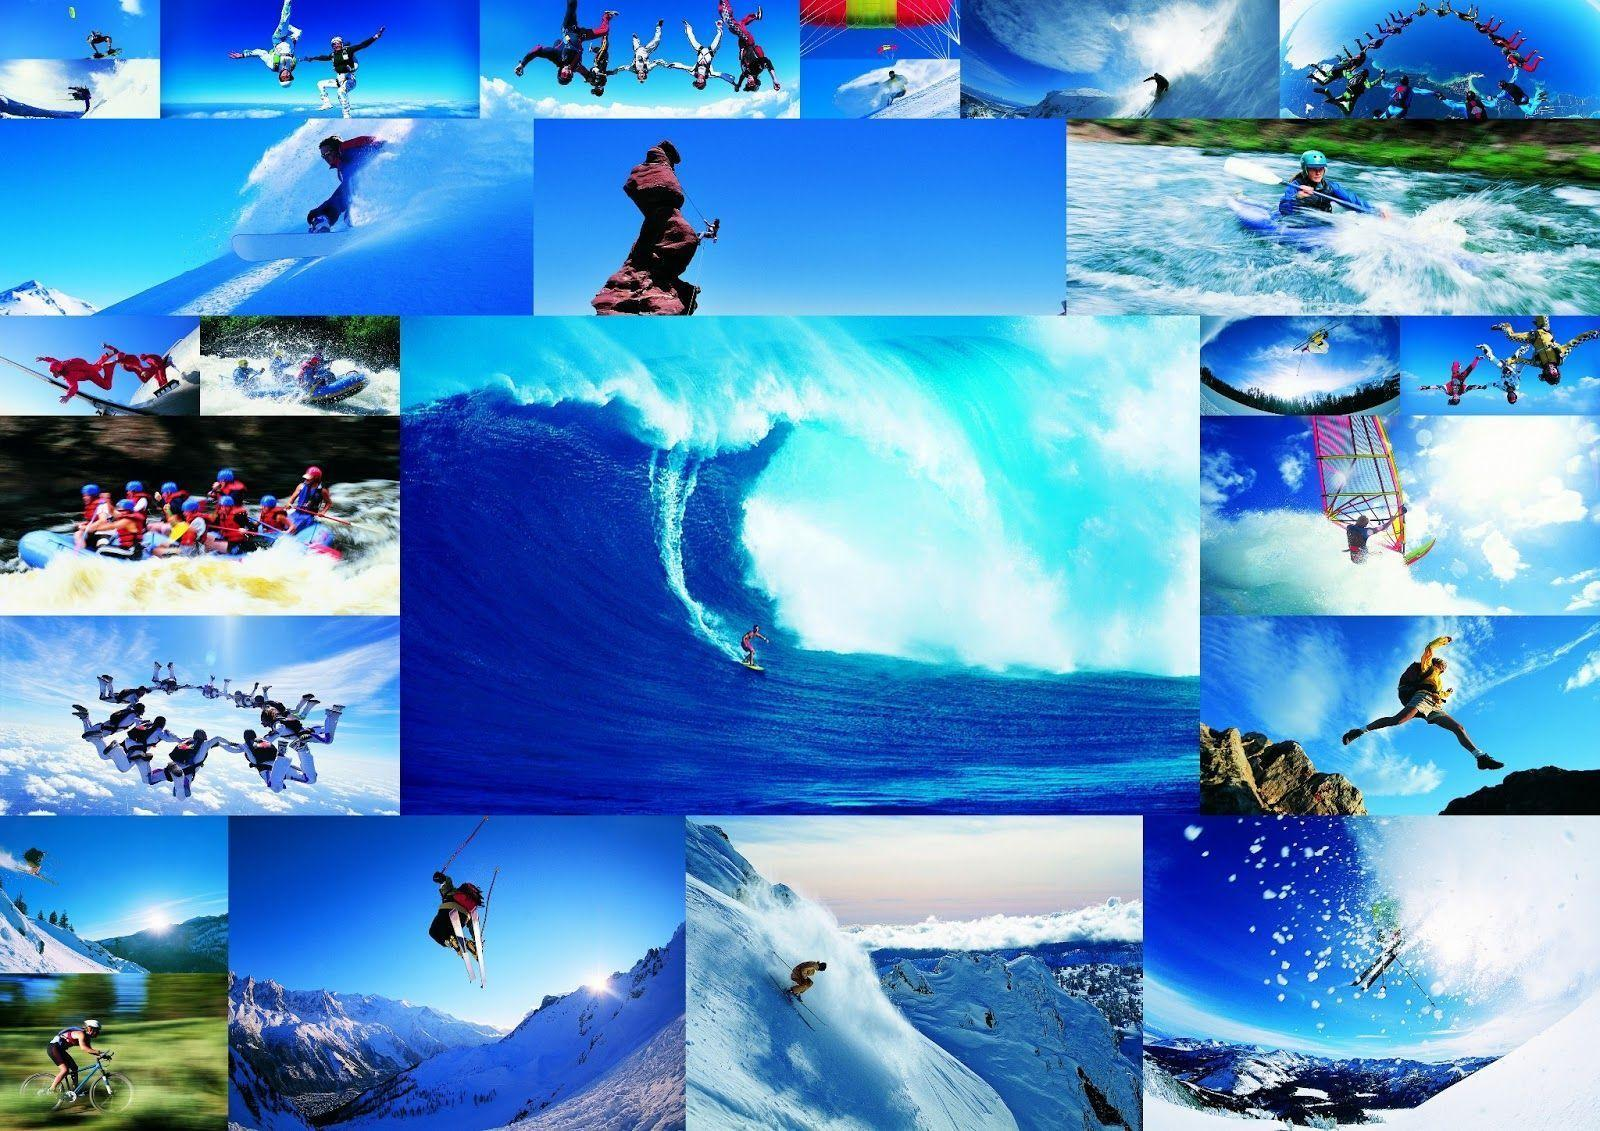 extreme wallpapers and images - photo #49